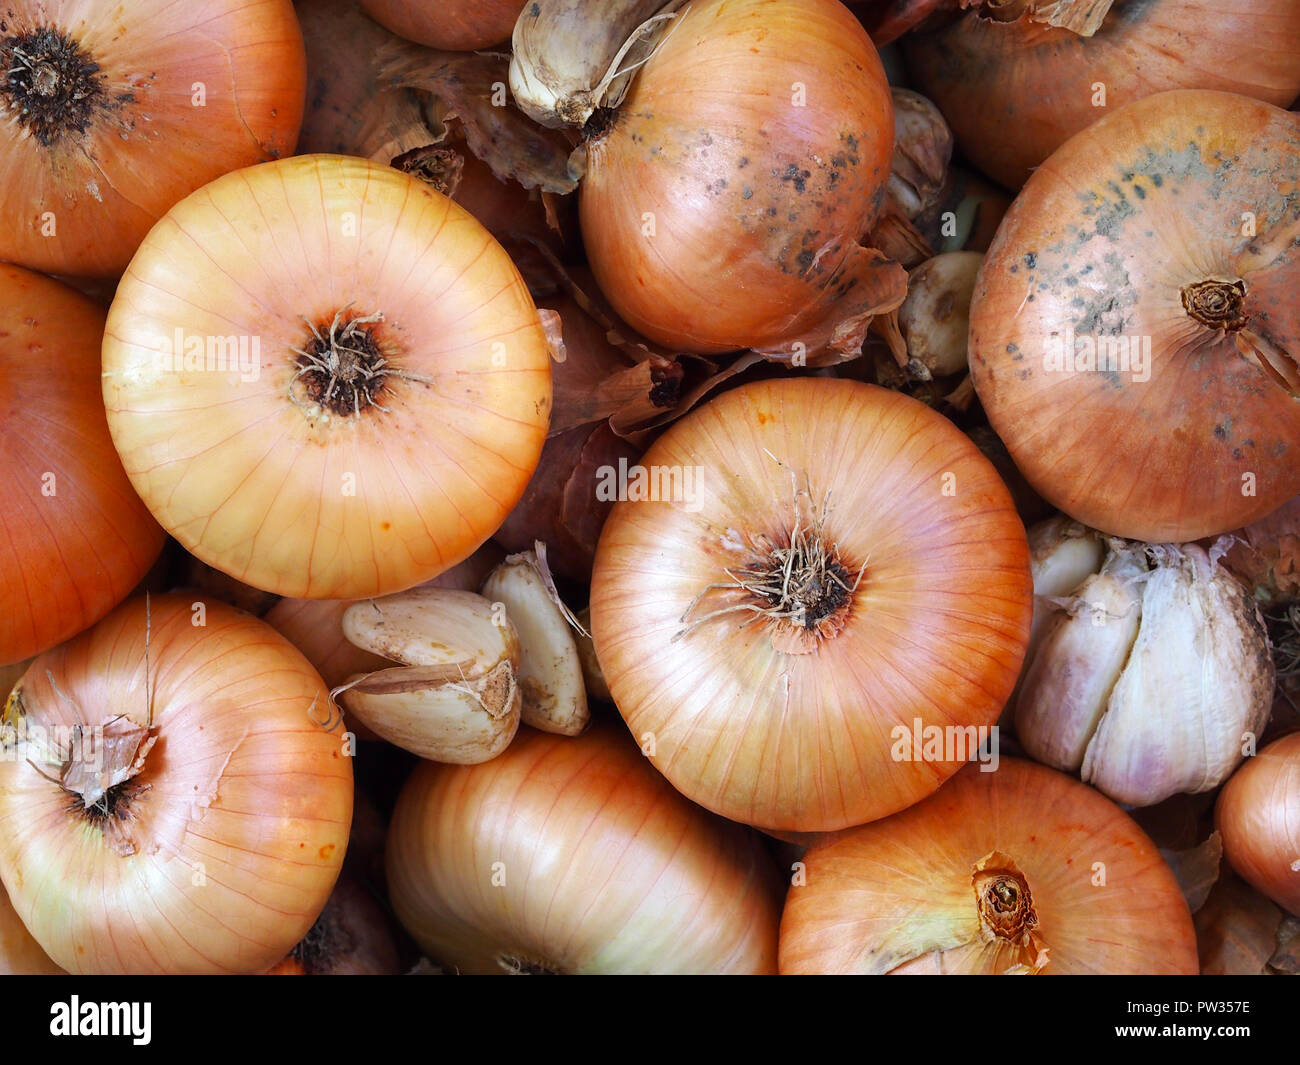 Freshly picked onions and garlic. Top view. Stock Photo